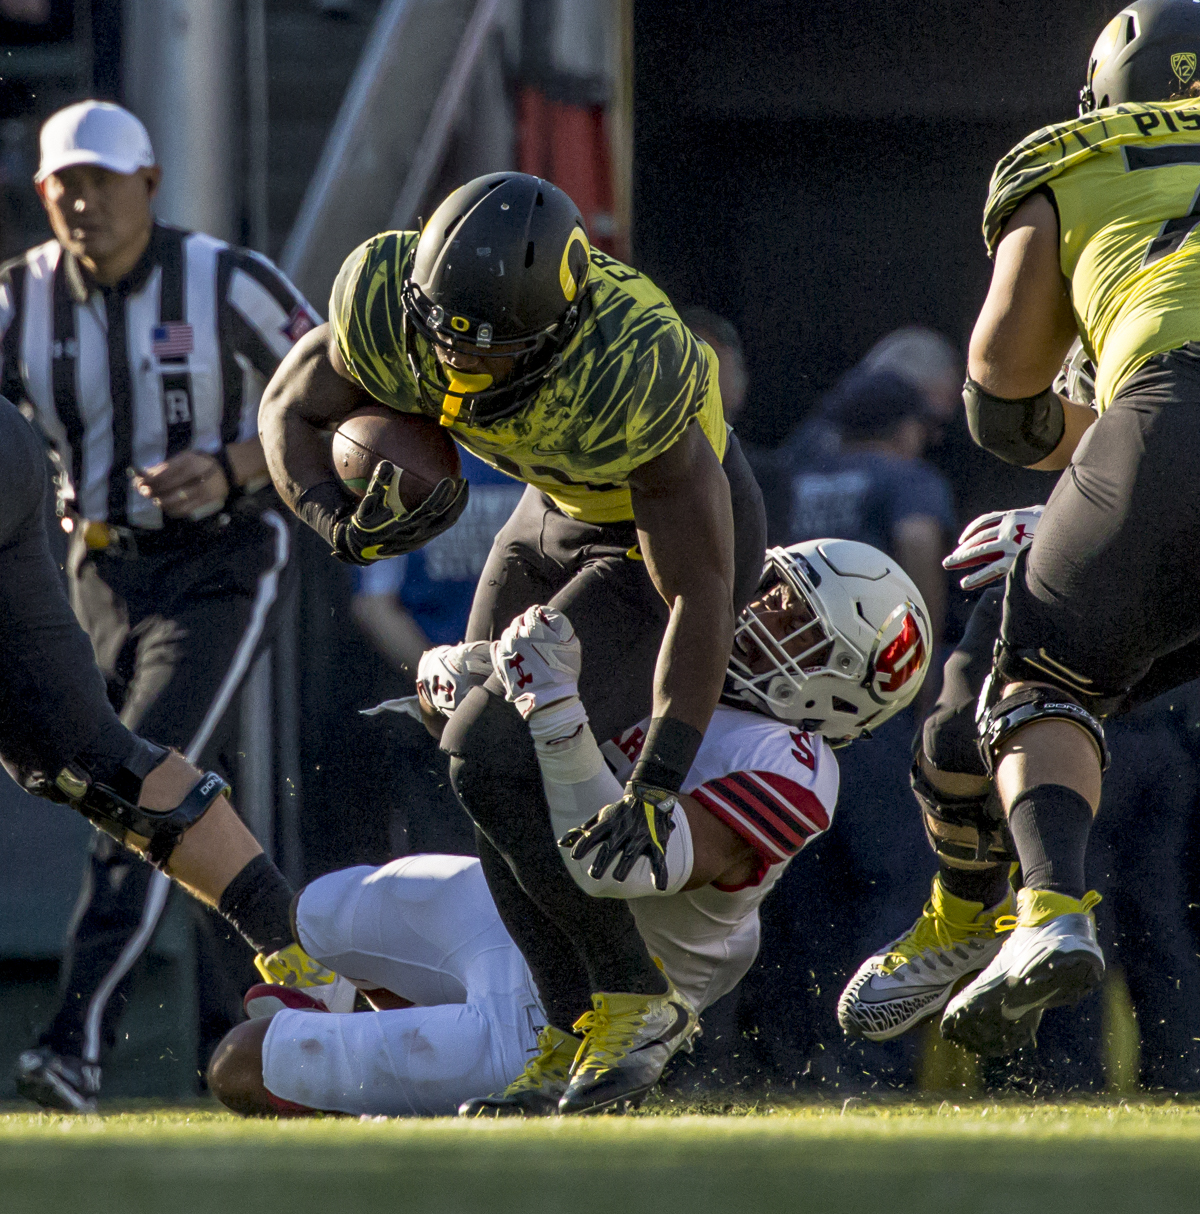 Oregon running back Royce Freeman (#21) attempts to brea free from a Utah defender. The Oregon Ducks lead the Utah Utes 17 to six at the end of the first half on a sunny afternoon at Autzen Stadium. Photo by Ben Lonergan, Oregon News Lab